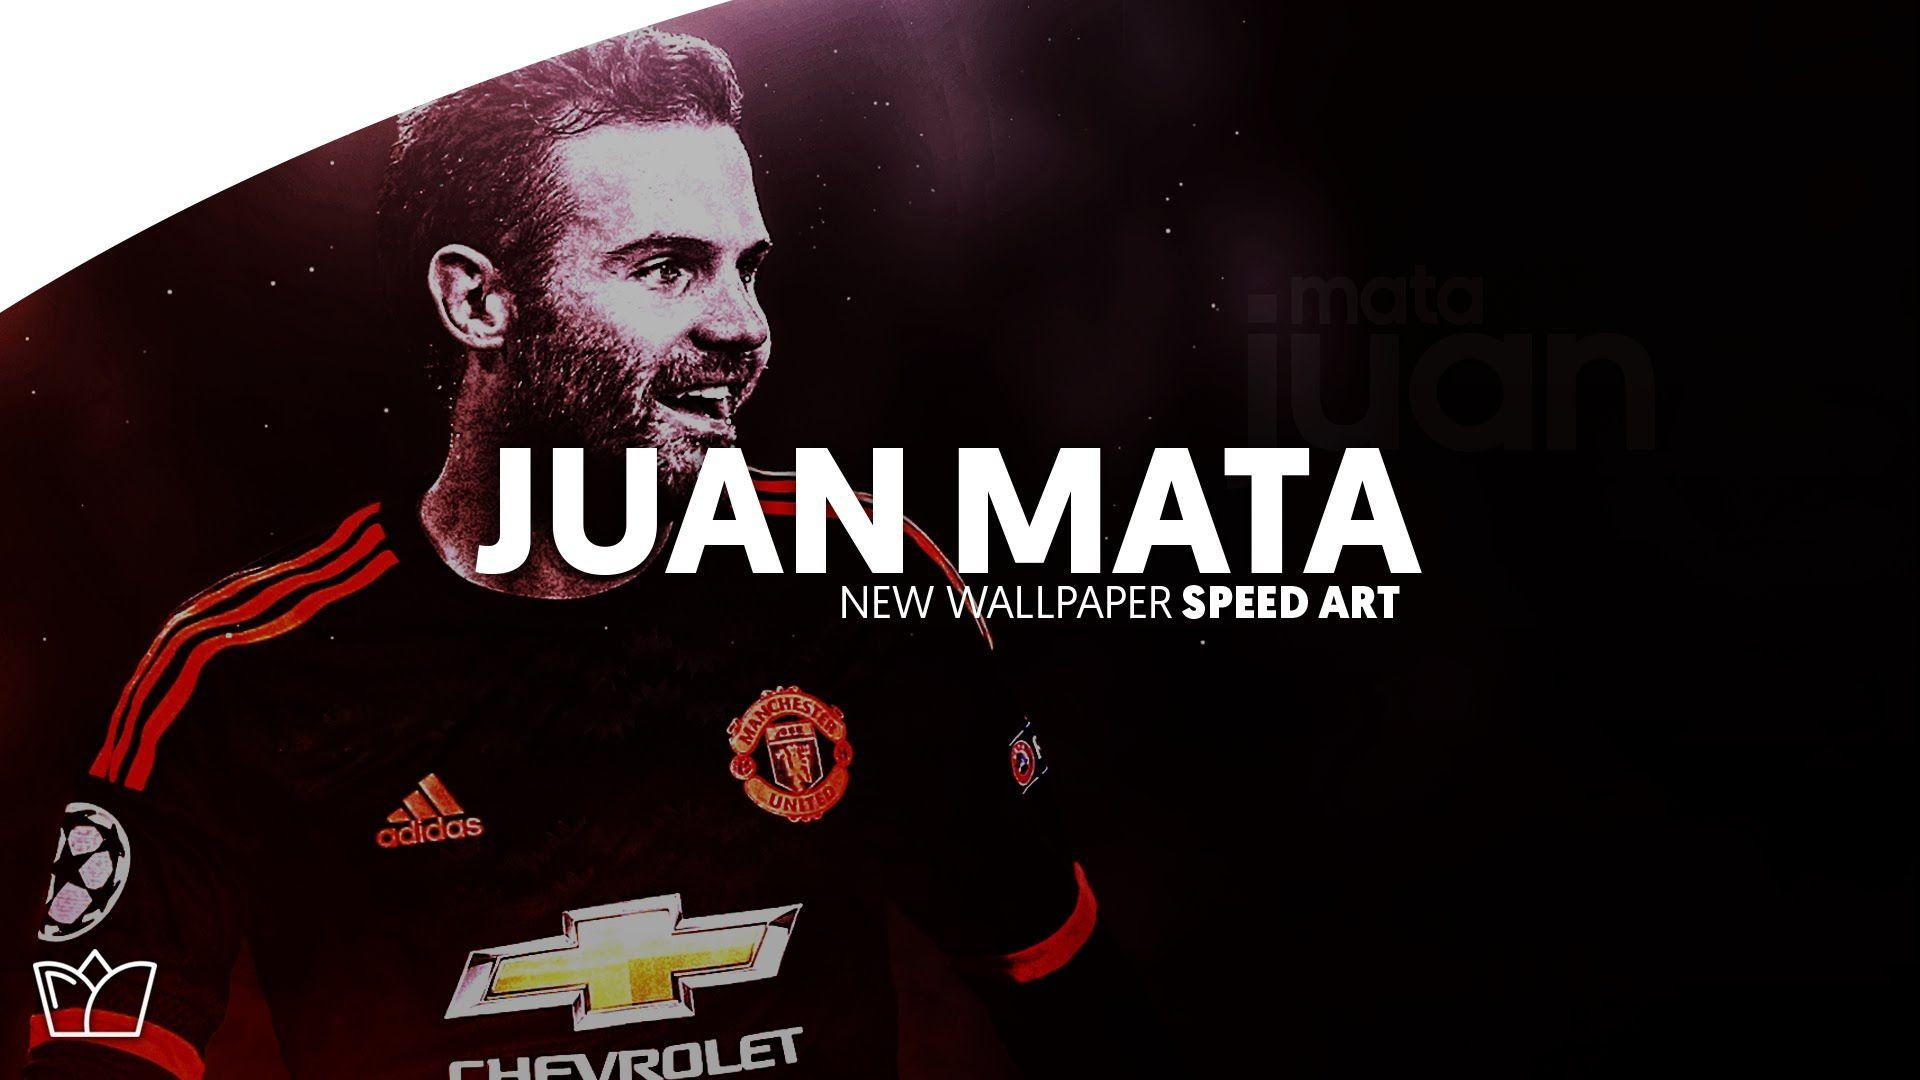 Juan Mata Wallpaper - Speed Art - Designed By StraverDesigns - YouTube